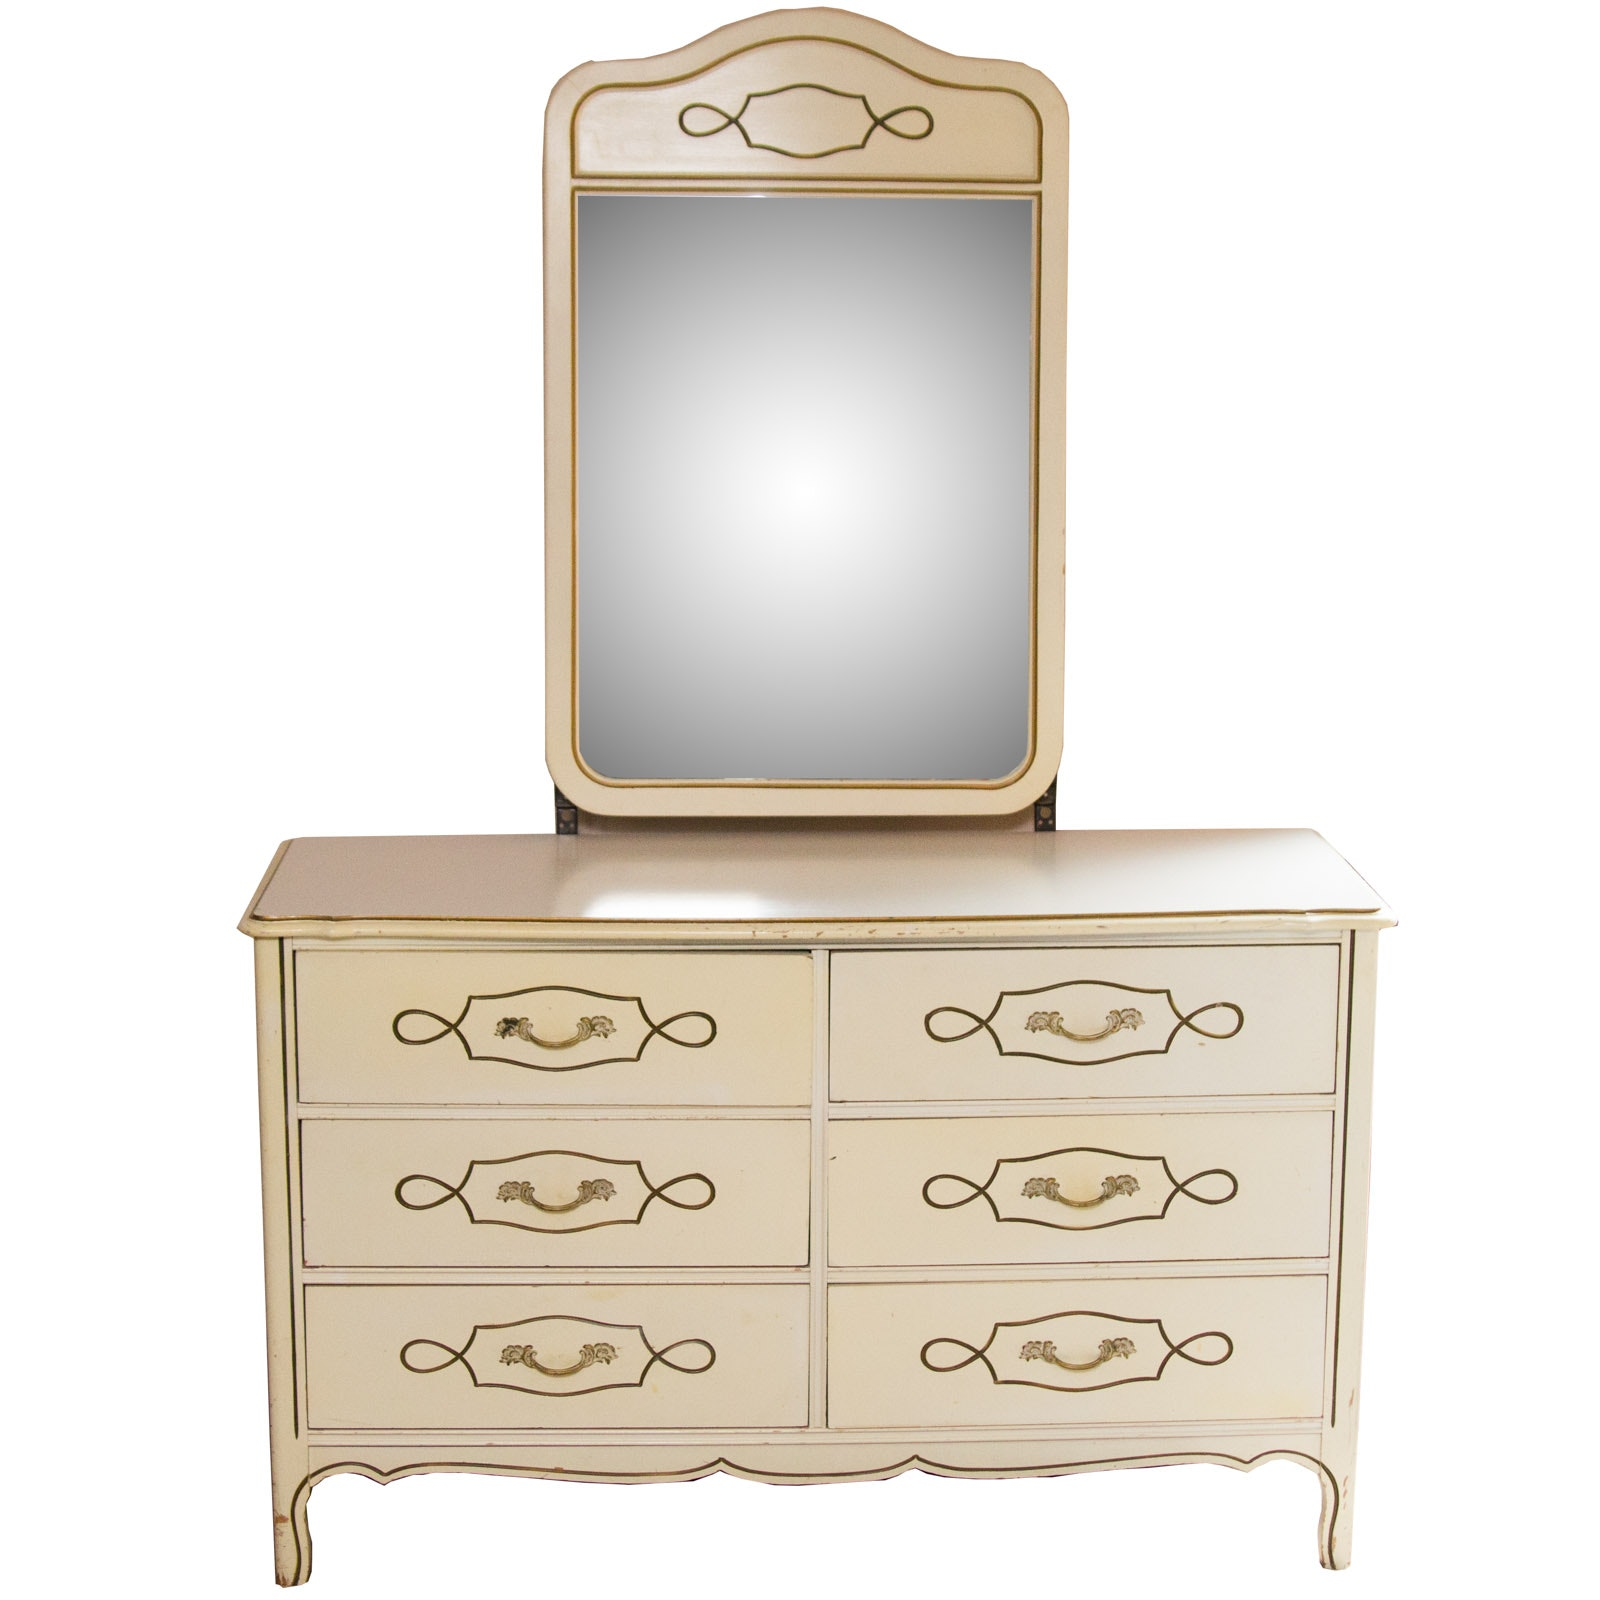 Harmony House Furniture Dresser With Mirror ...